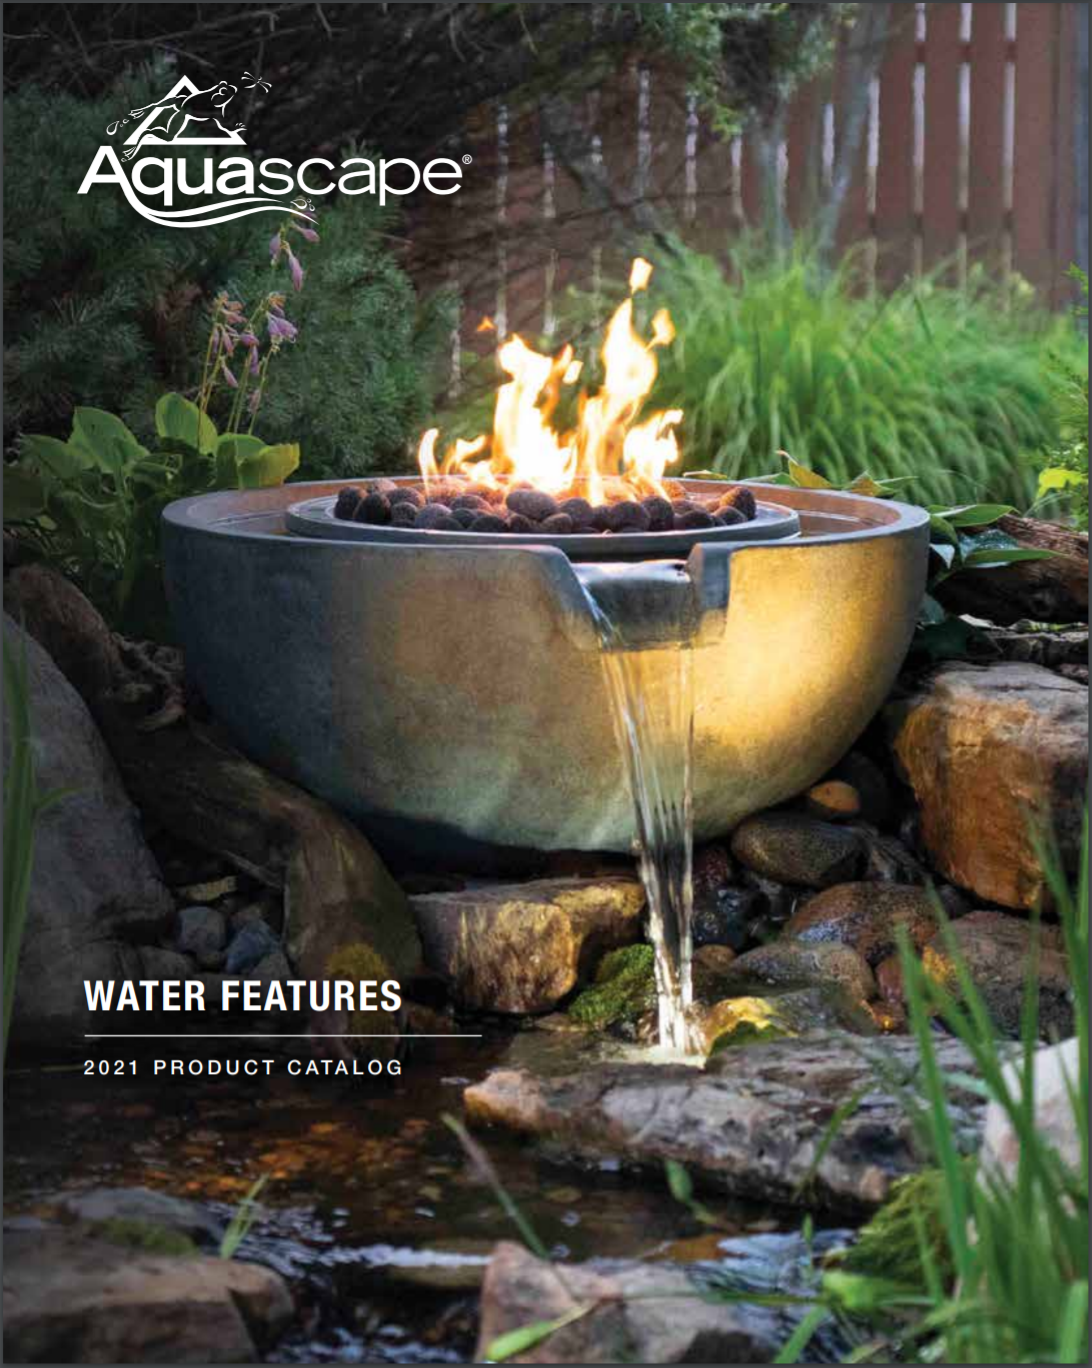 aquascape water features 2021 product catalog